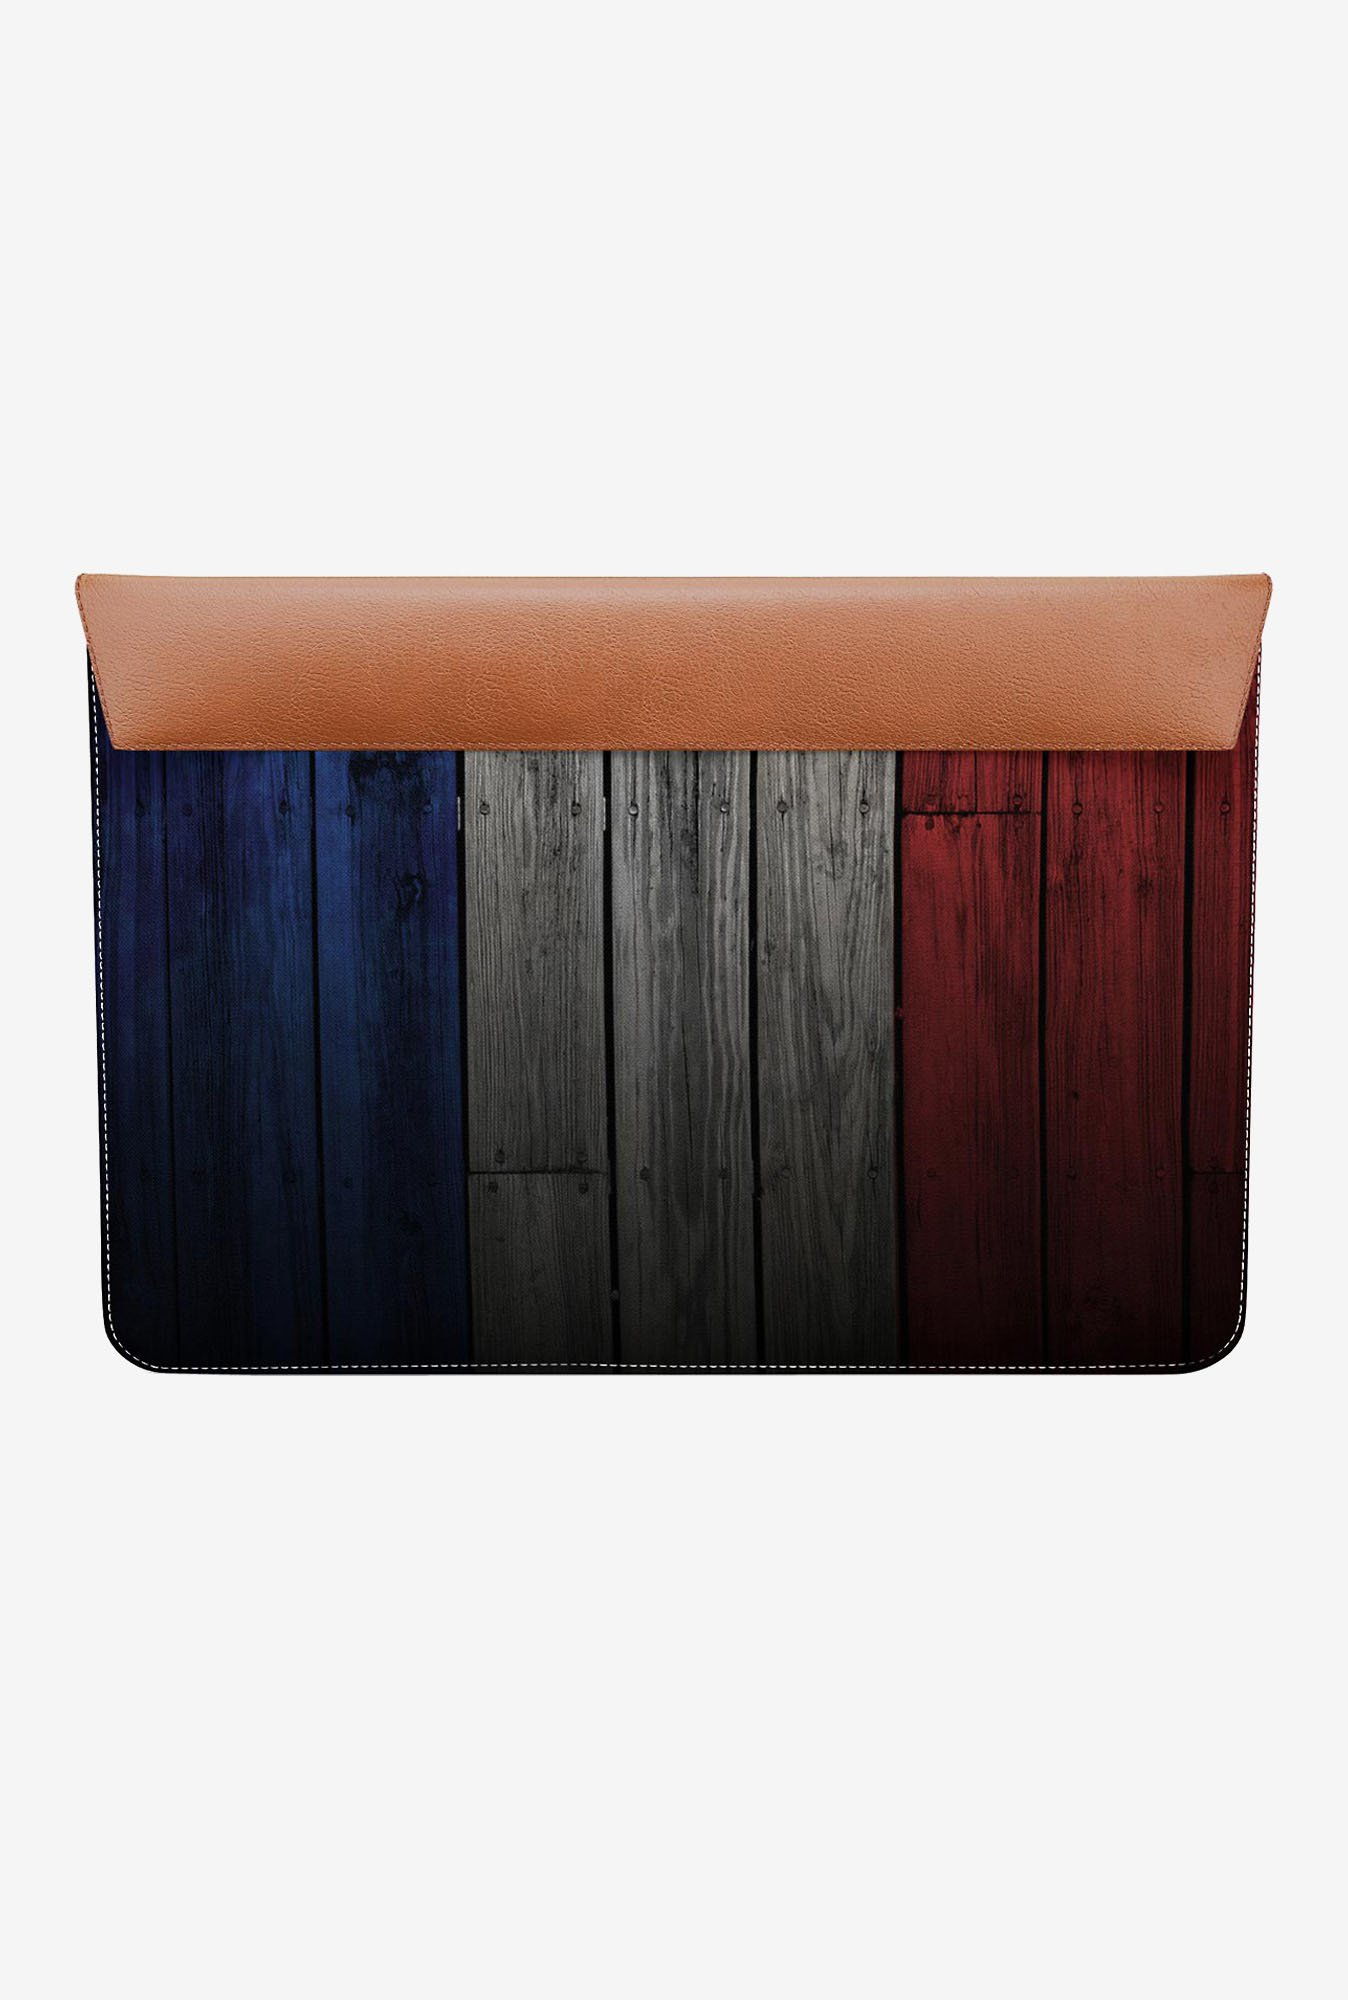 DailyObjects The French MacBook 12 Envelope Sleeve